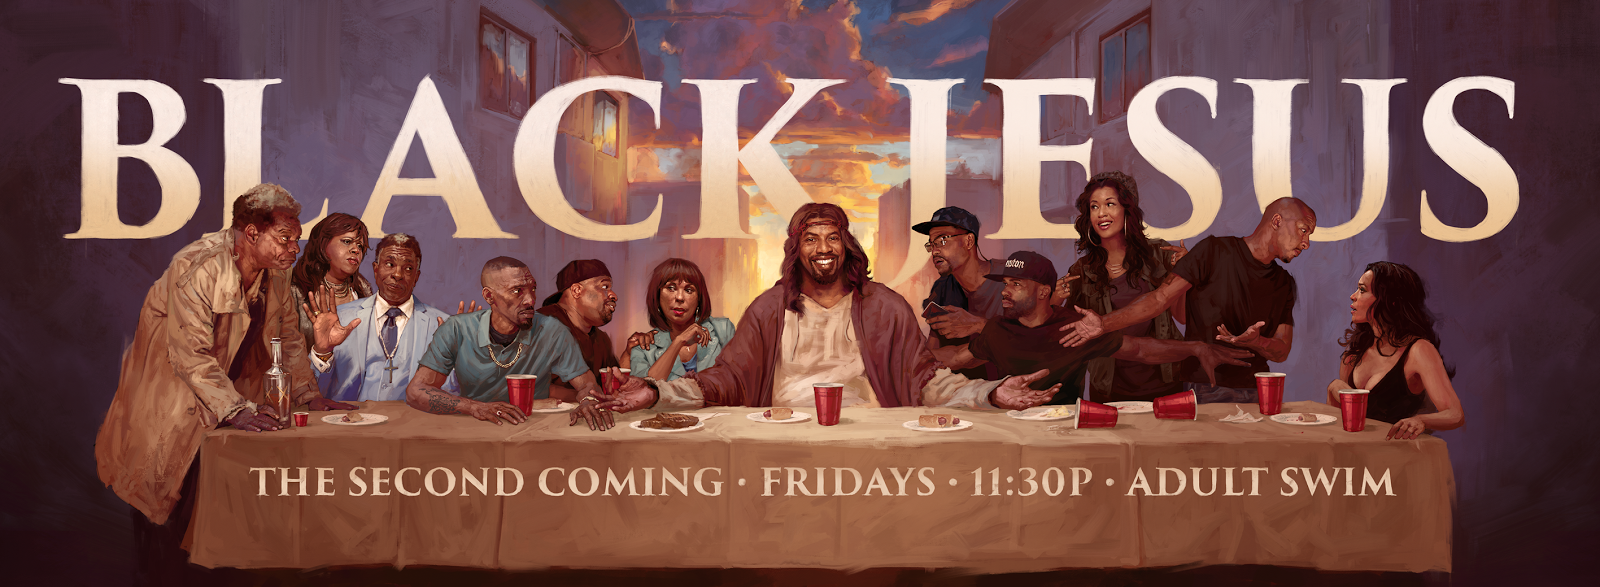 Who Is In The Black Last Supper Painting